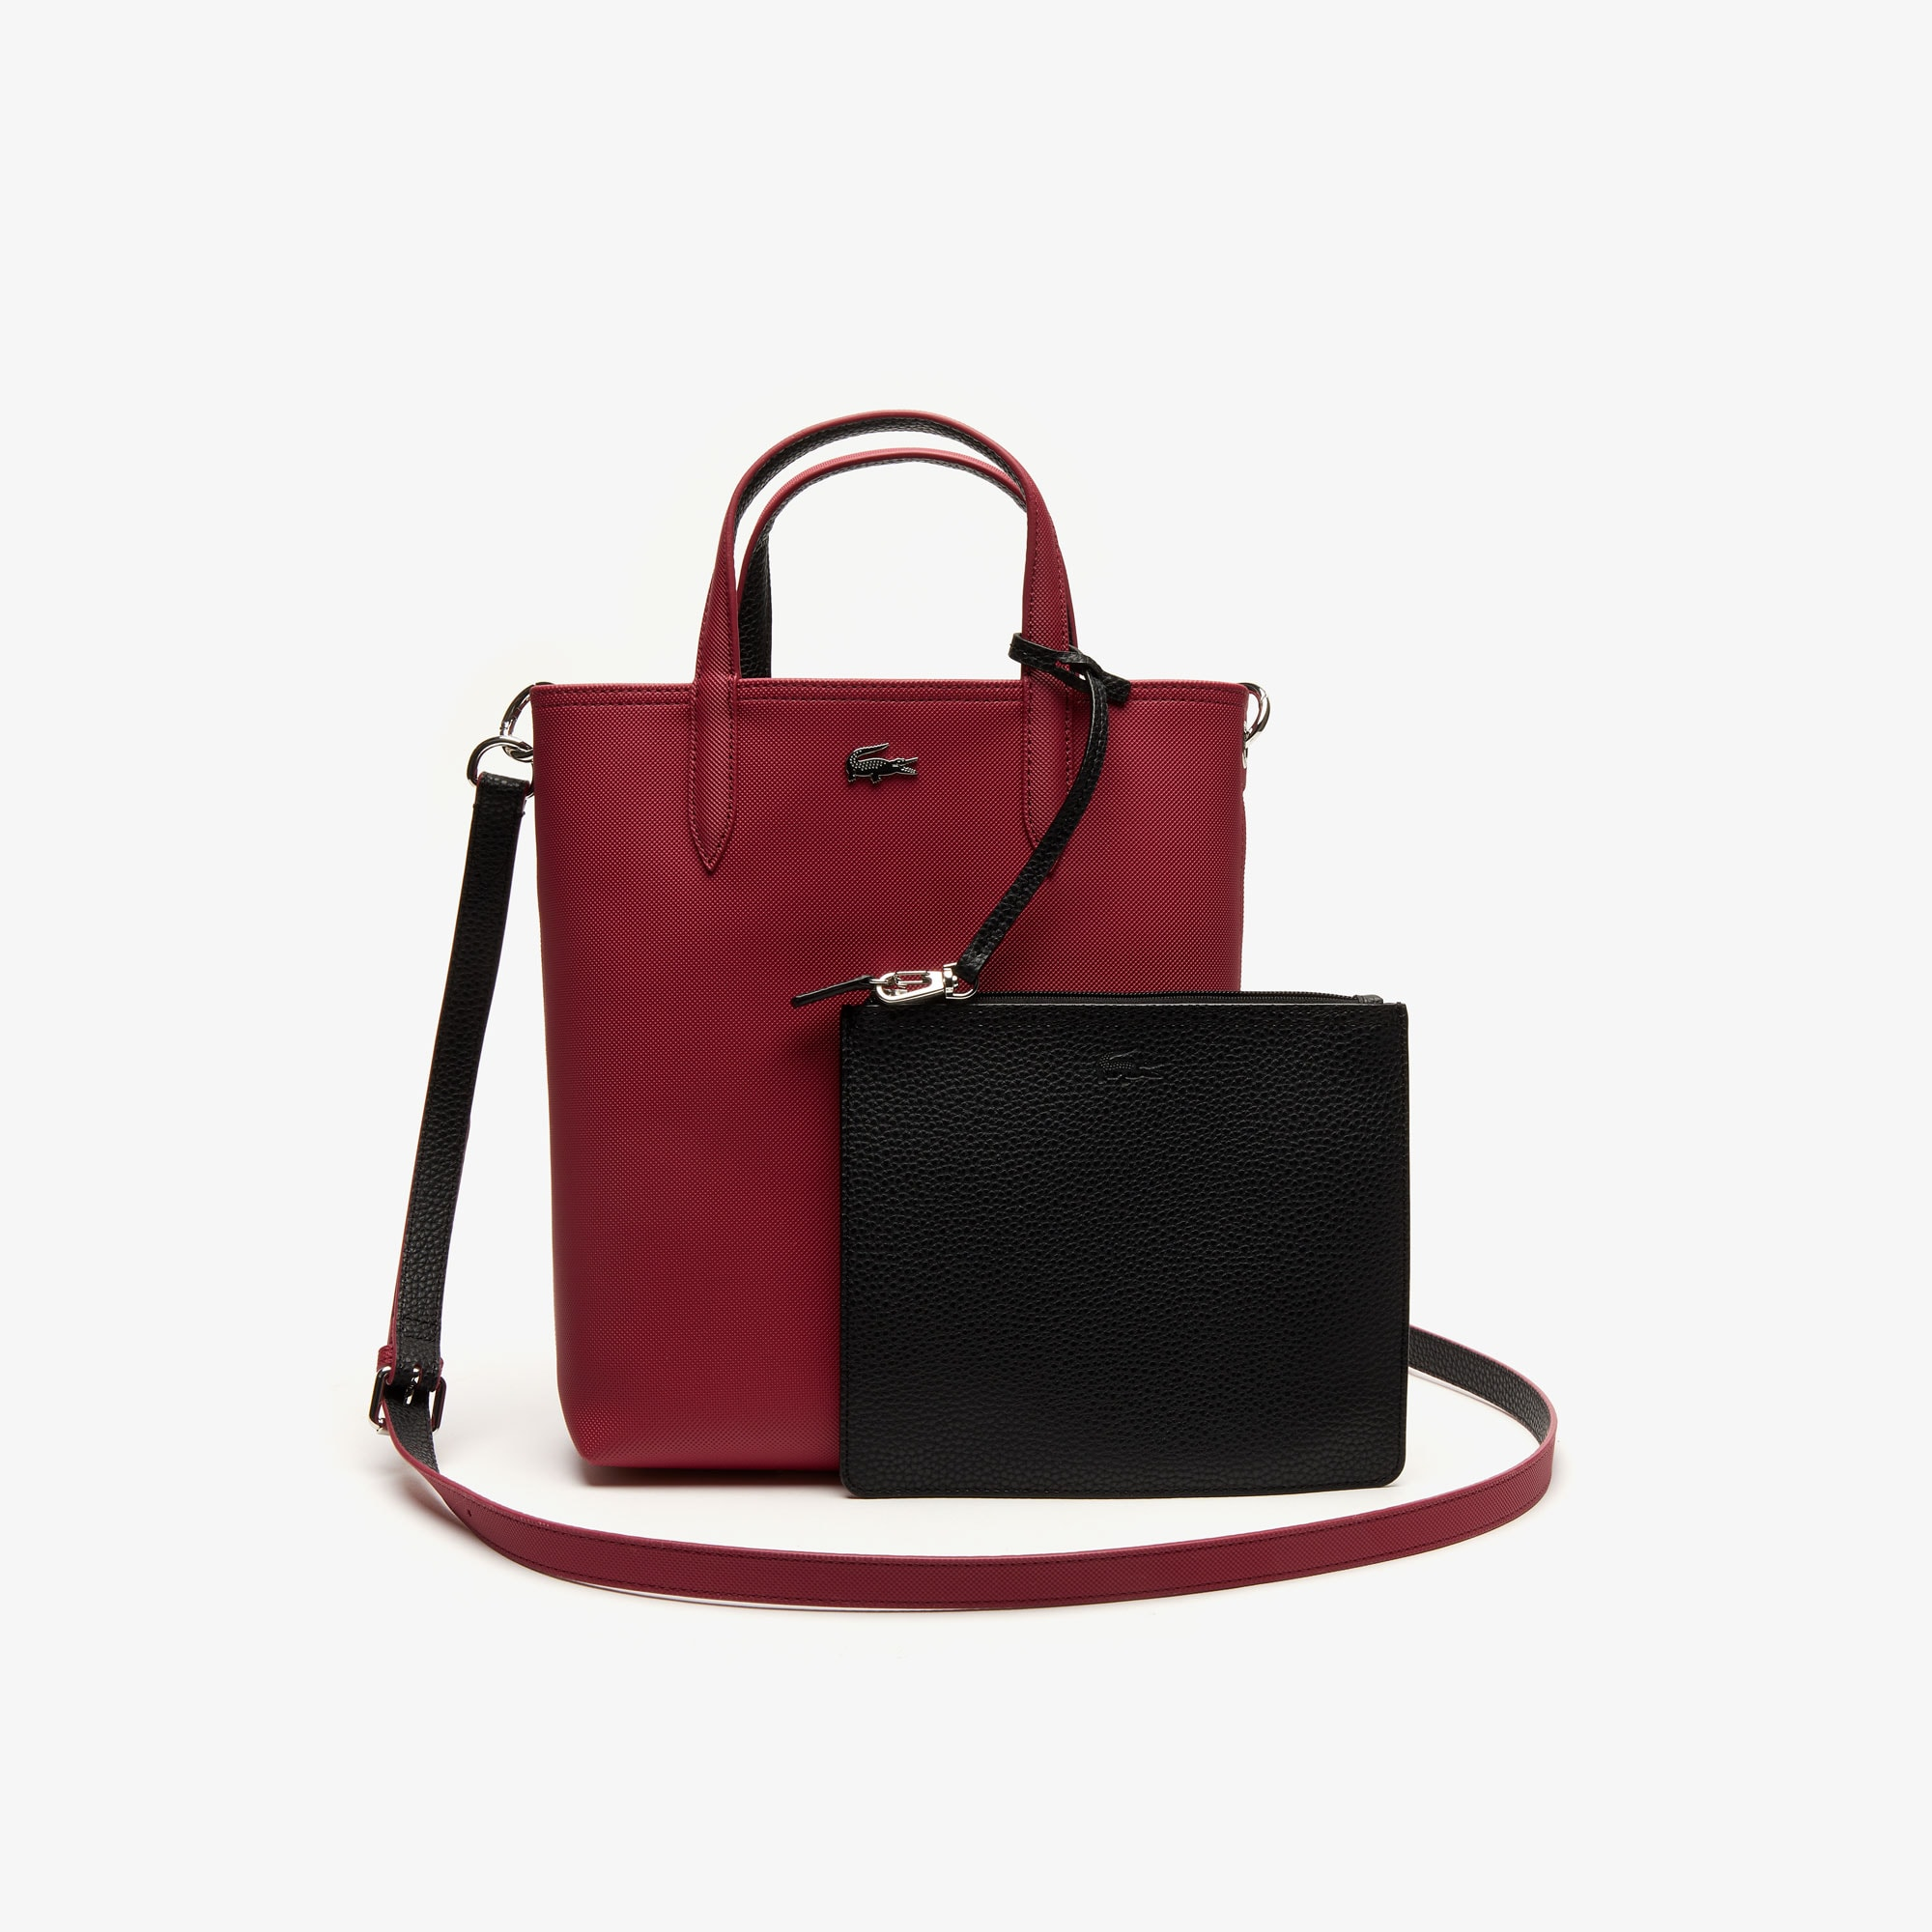 4681d21e845 Bags & Handbags Collection | Women's Leather Goods | LACOSTE